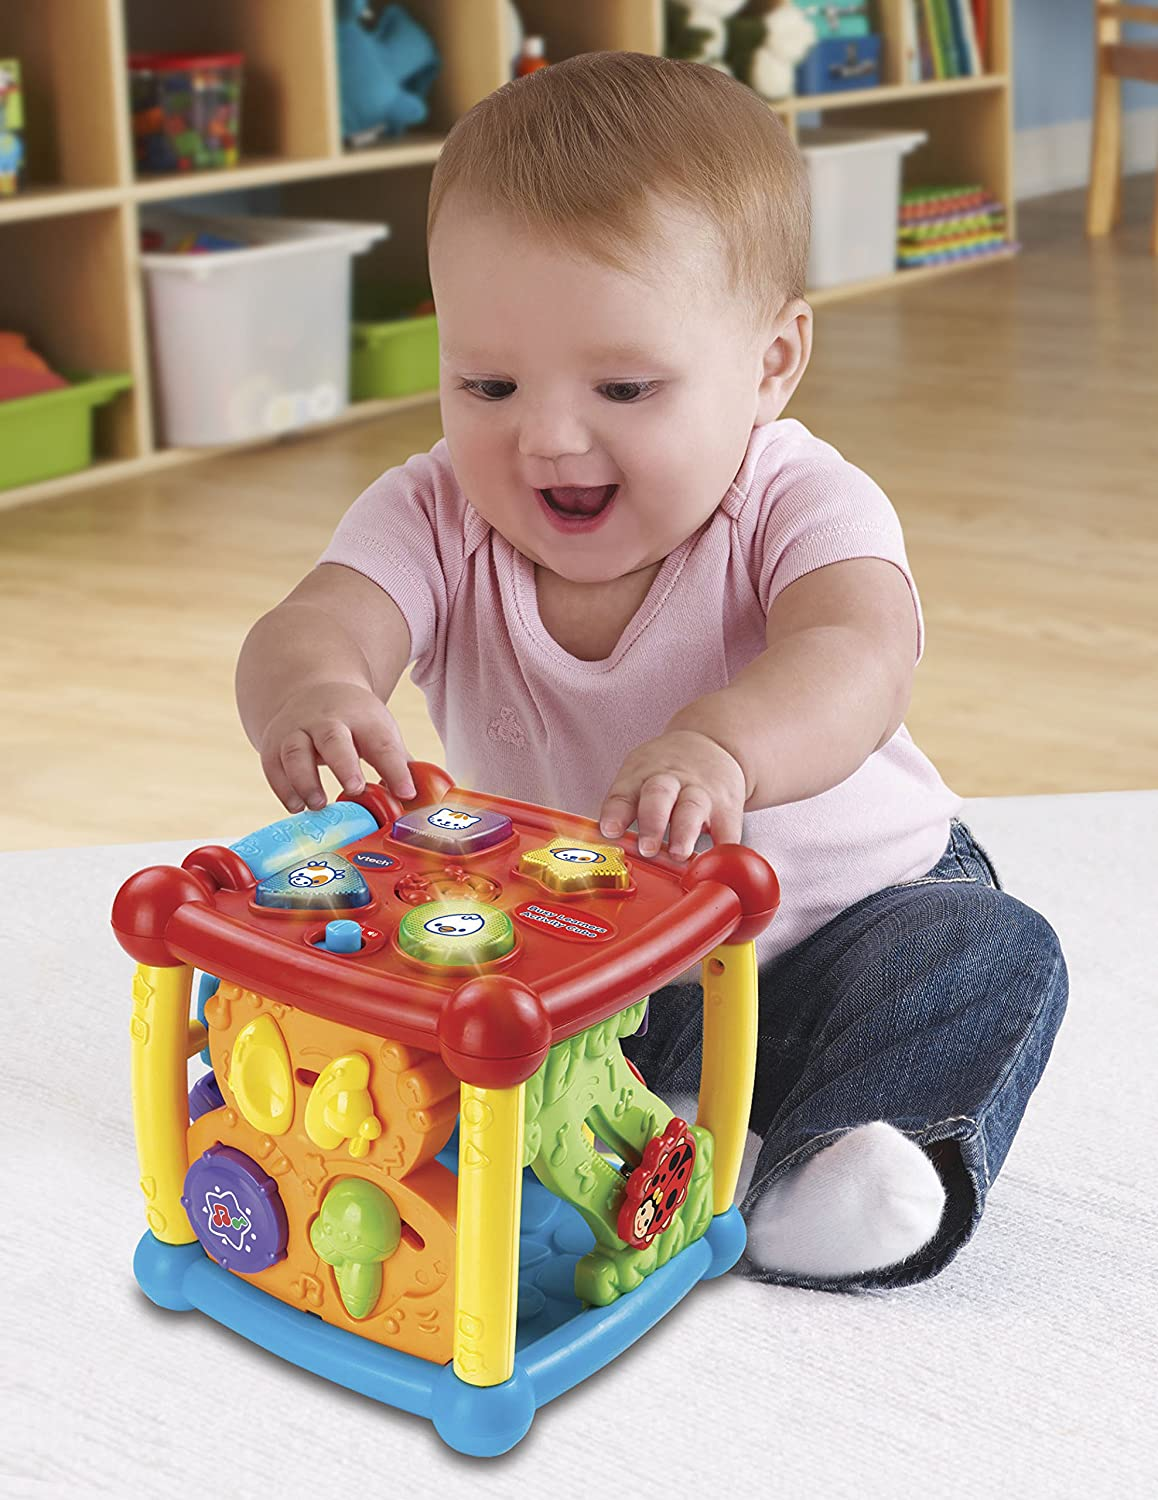 Toddler Toys Physical Toys : Vtech baby activity center cube kids learning toys animal